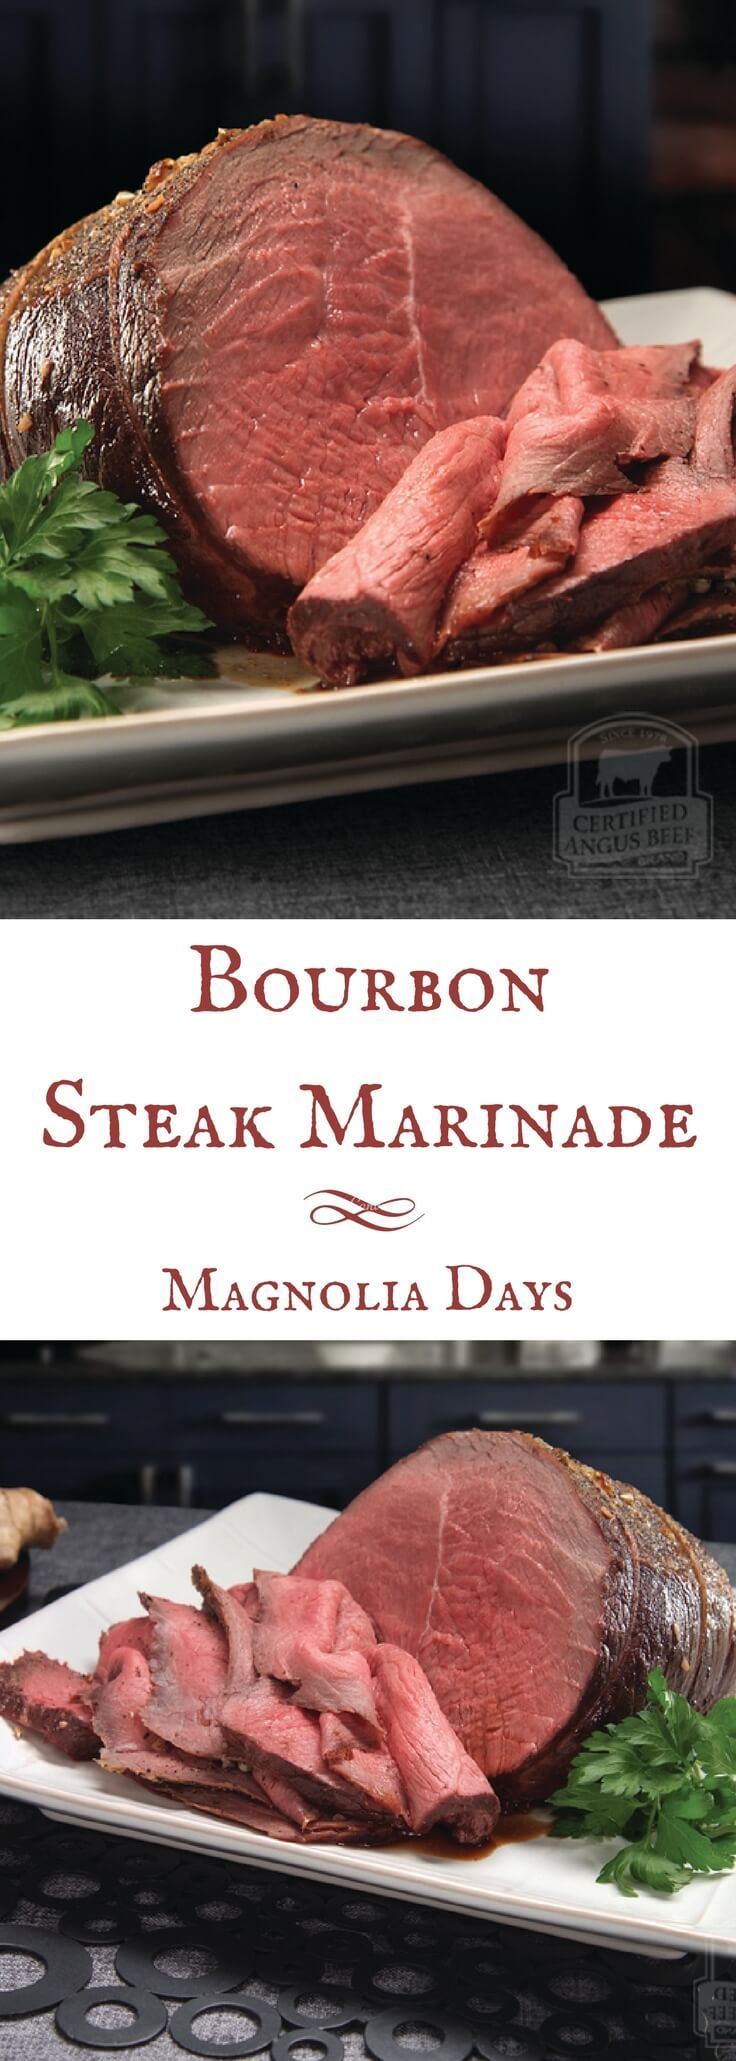 Marinate any cut of steak with this Bourbon Steak Marinade! This recipe comes from the beef experts at Certified Angus Beef, so you know it's a good one. via @magnolia_days sponsored by @CertAngusBeef